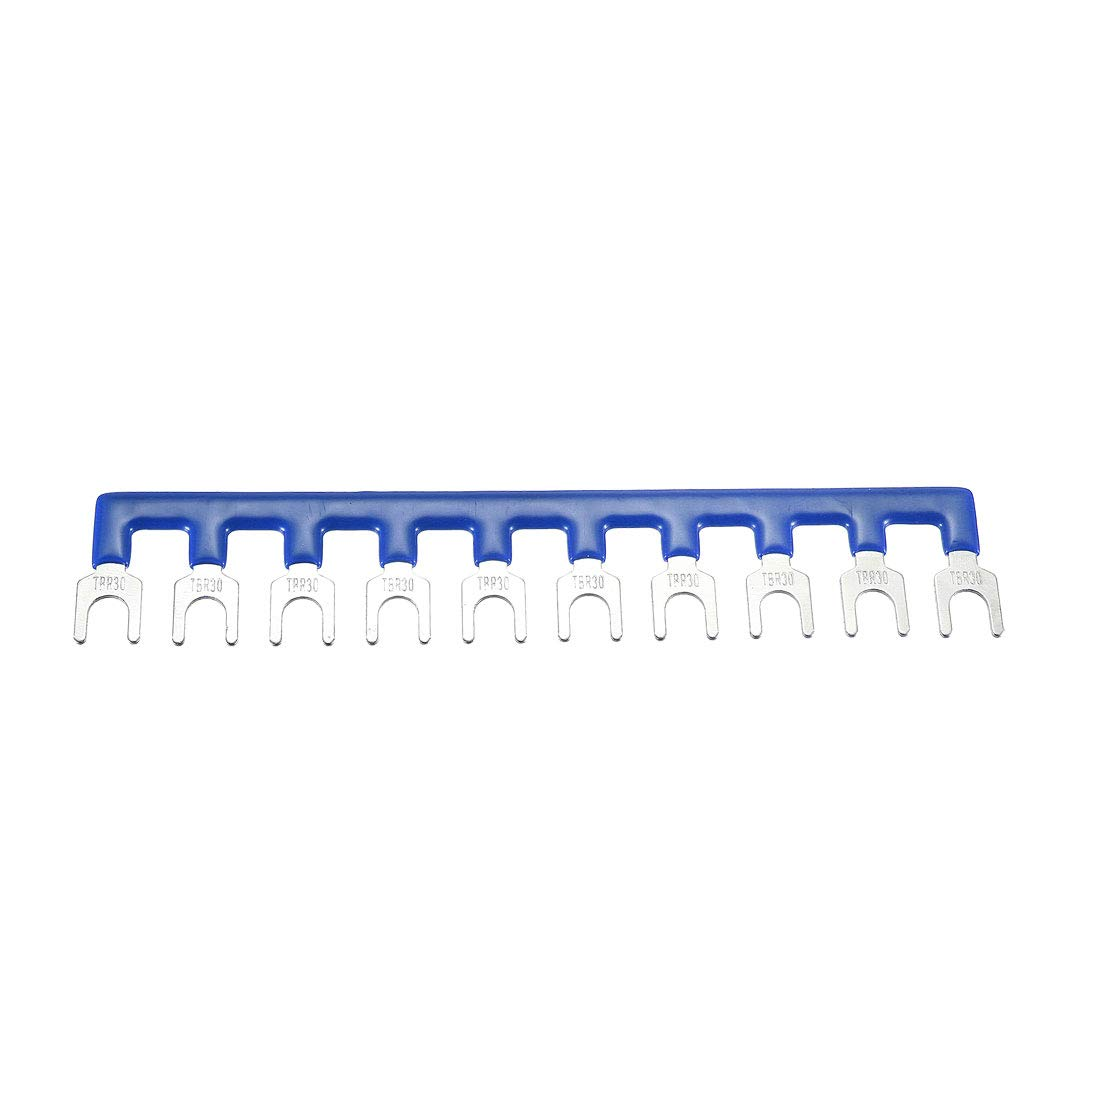 uxcell 600V 30A 10 Positions Terminal Block Barrier Strip Fork Type Pre-Insulated Blue